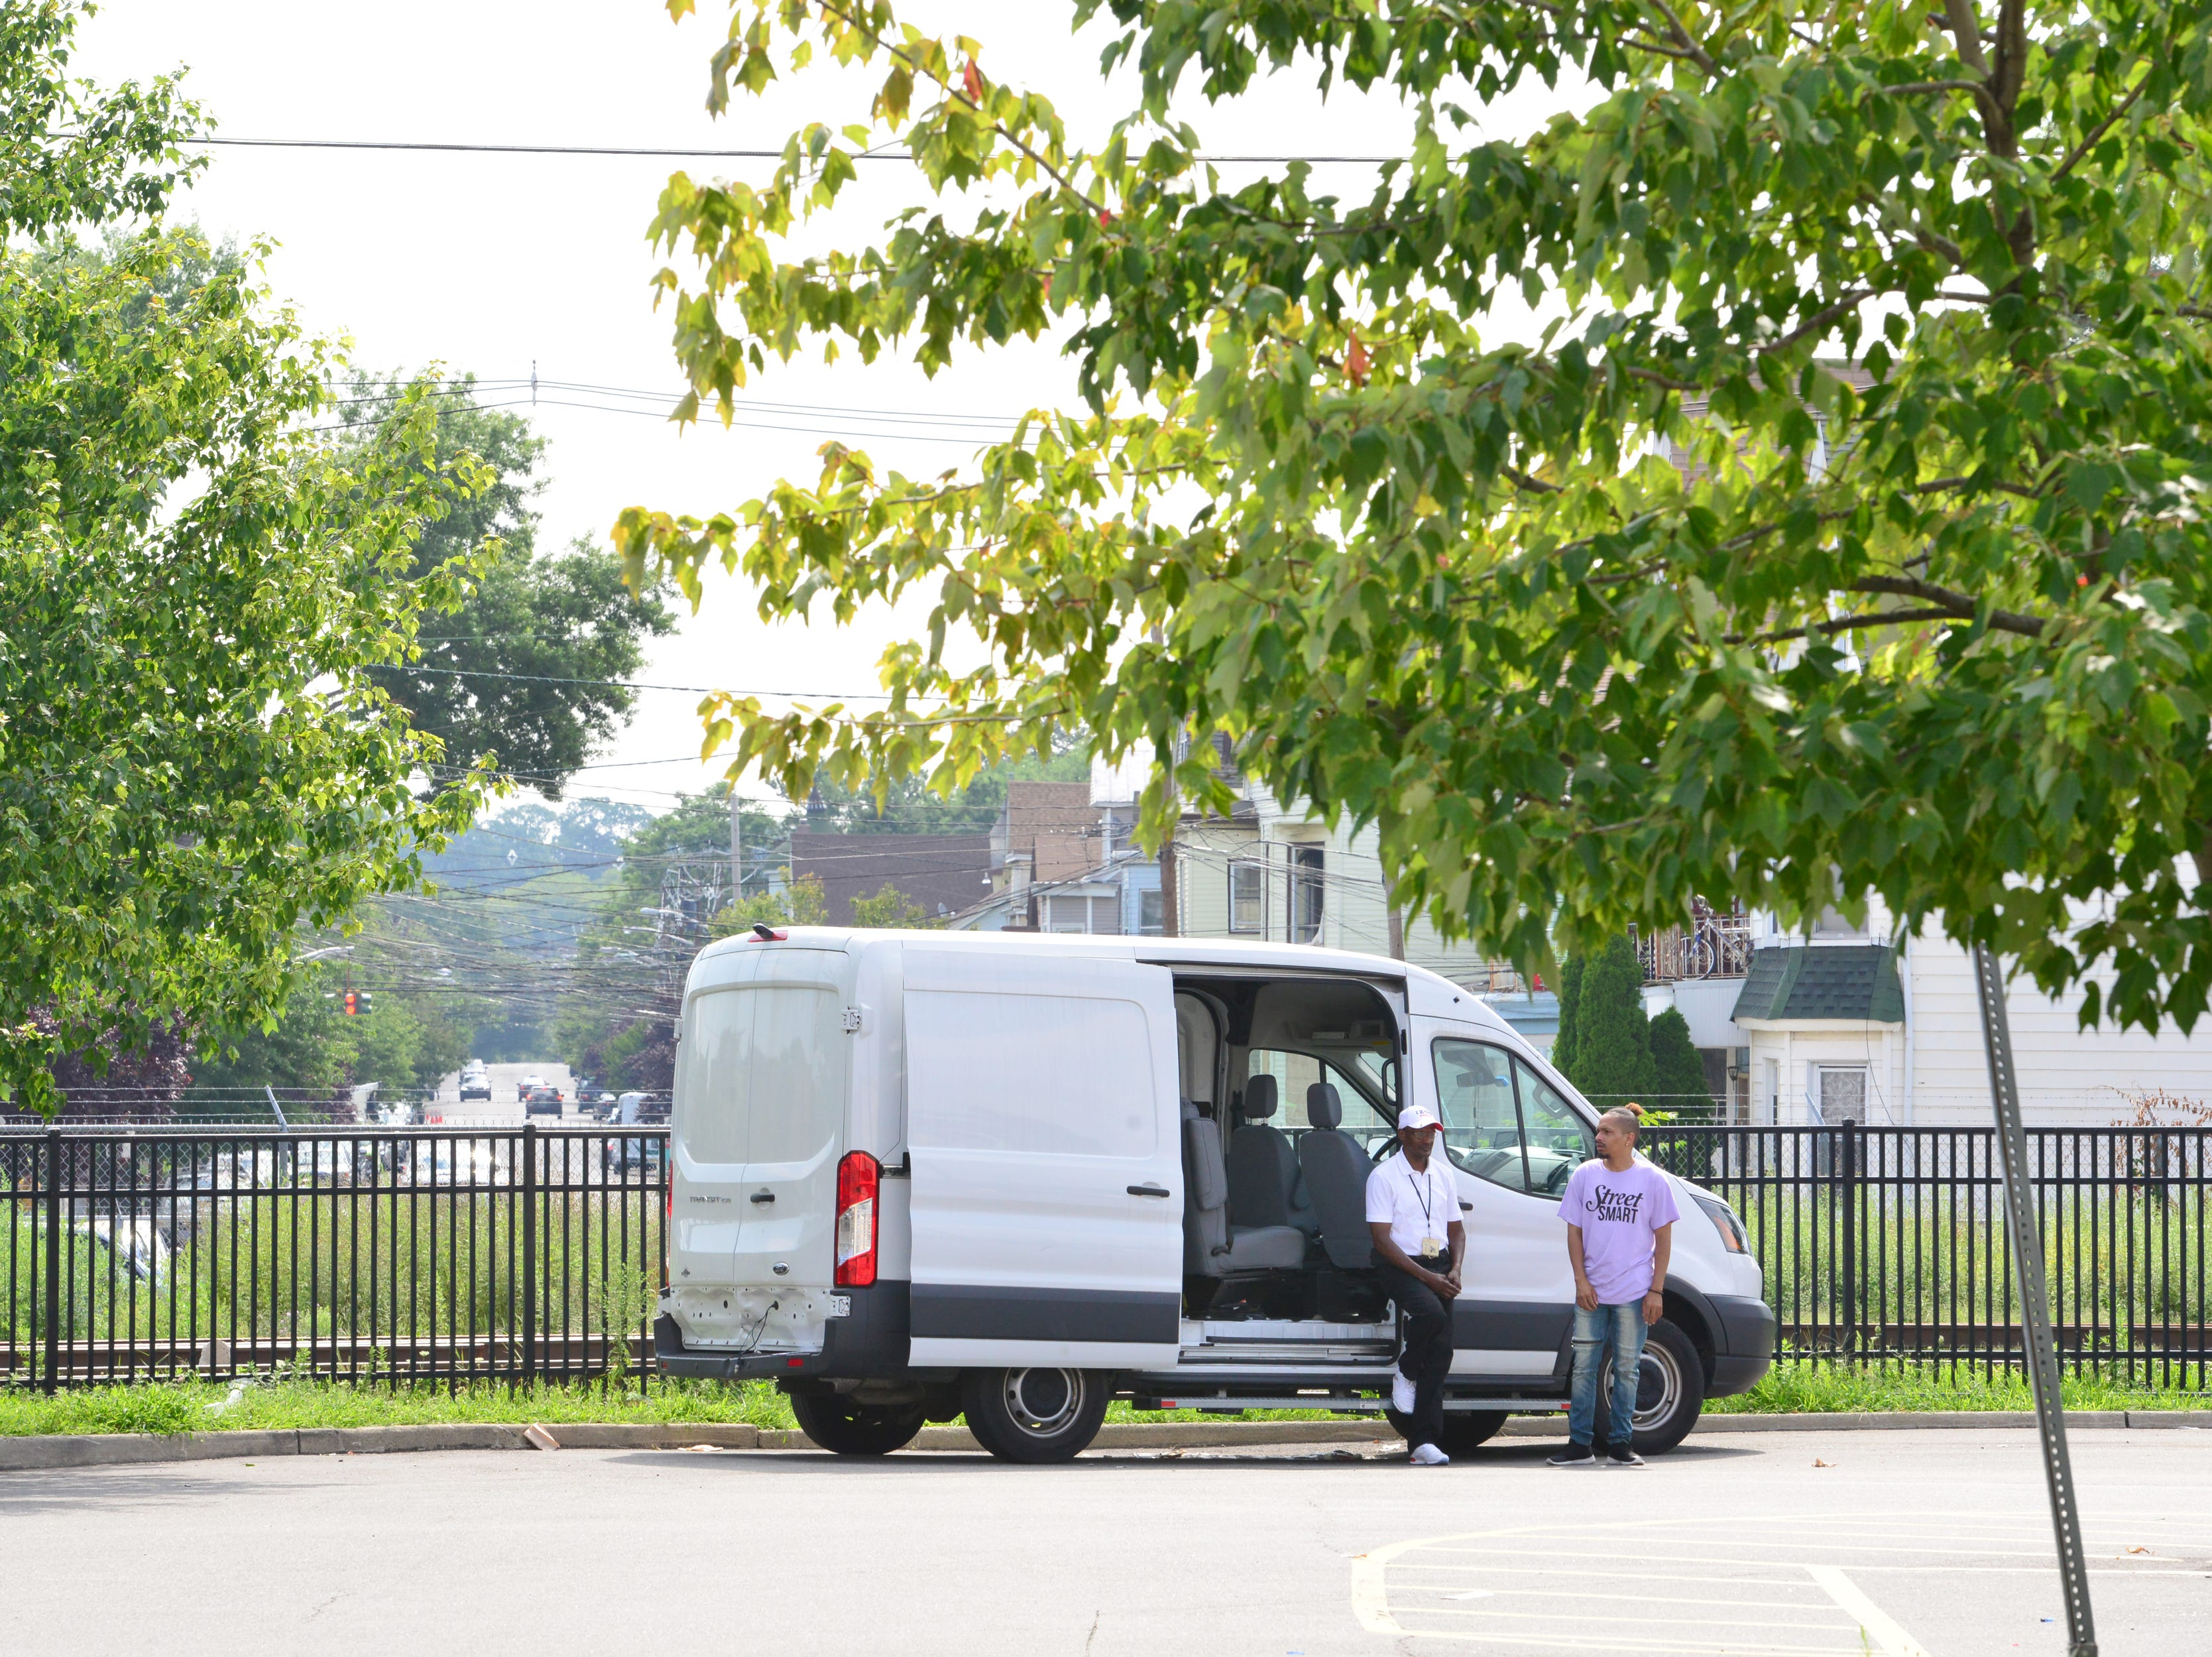 From left, Ralph Henderson and Railen Henderson, no relation, are harm reduction specialists, wait by the van for clients to exchange syringes. A van parked in the Walgreen's parking lot provides clean needles in exchange for dirty ones twice a week in Paterson on Friday July 27, 2018. For every used syringe brought in, the harm reduction specialists with Hyacinth Foundation provides a new sterile syringe. The van is stocked with syringes of different sizes, alcohol wipes, constriction bands, cooking cups, water, strips to test for fentanyl, and other products to safely inject heroin.